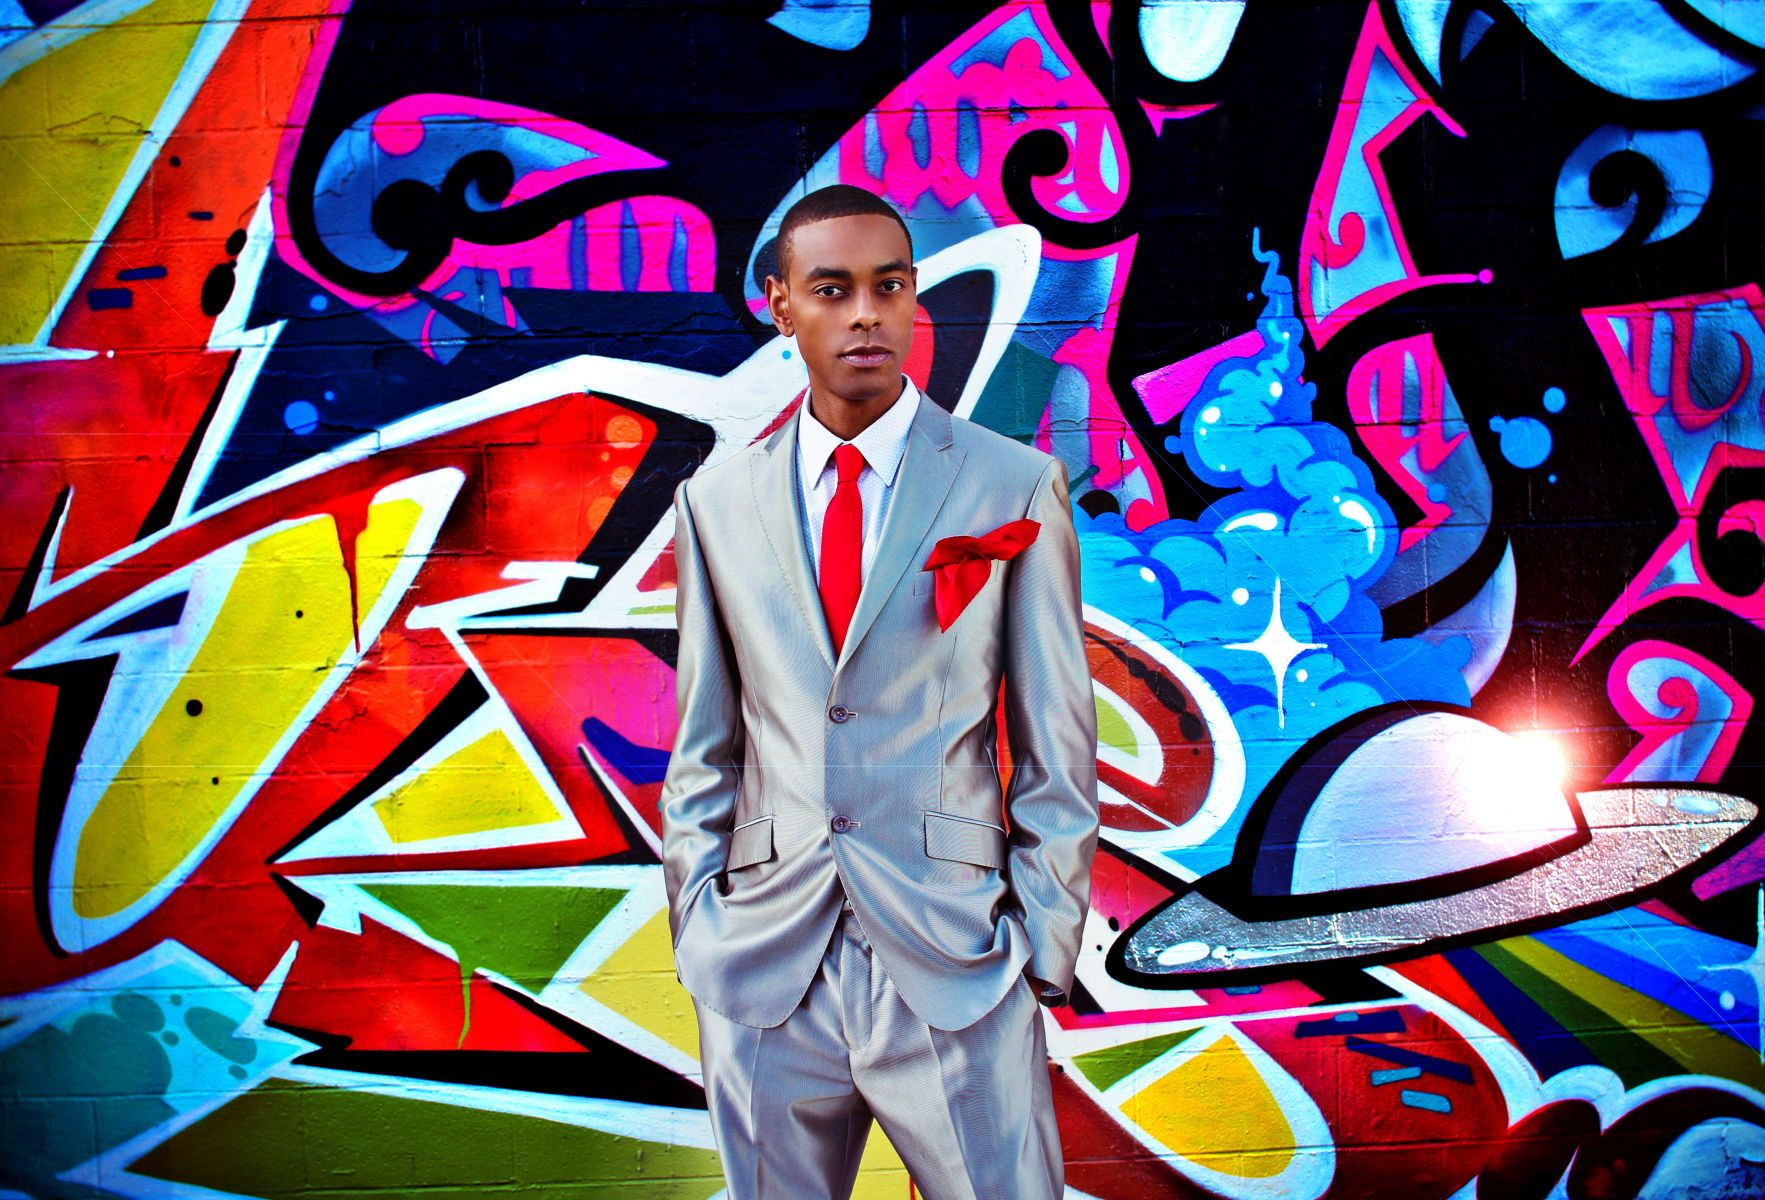 1teck_holmes__host__tv_personality__lanisha_cole_photography__fashion__suit_and_tie__graffiti_wall.jpg